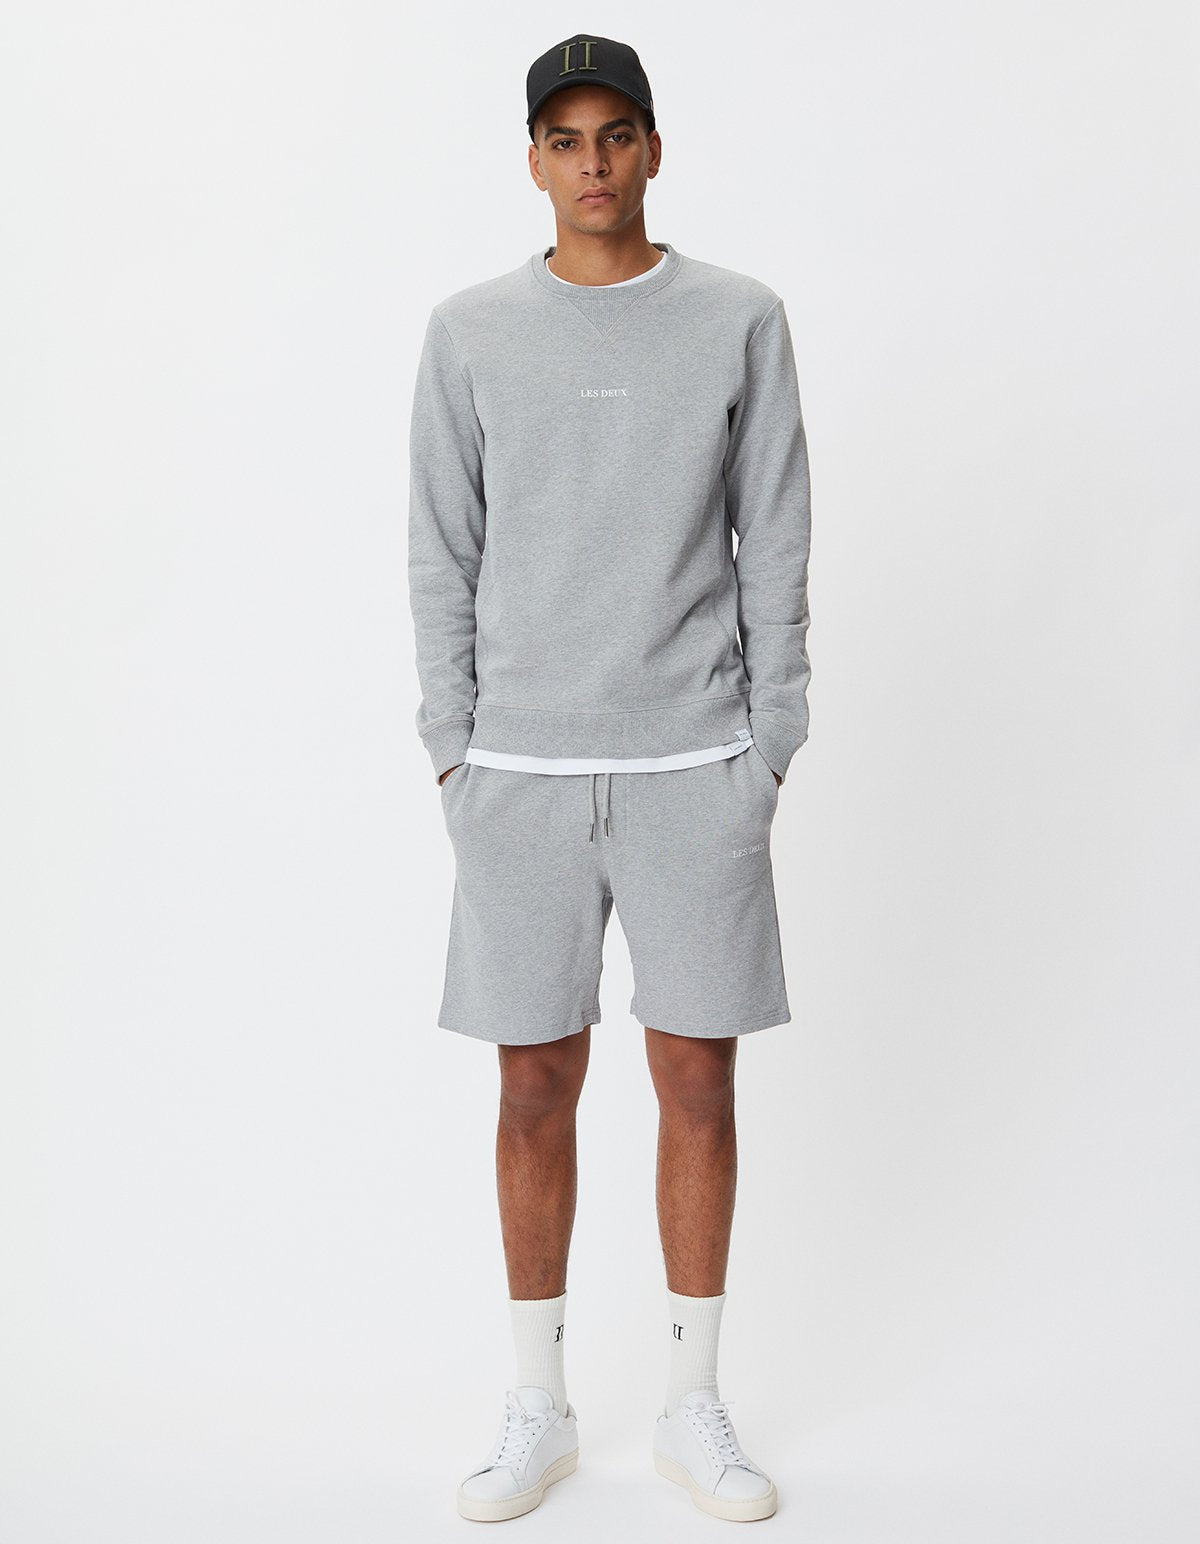 Lens Light Grey Melange Crew Neck Sweatshirt